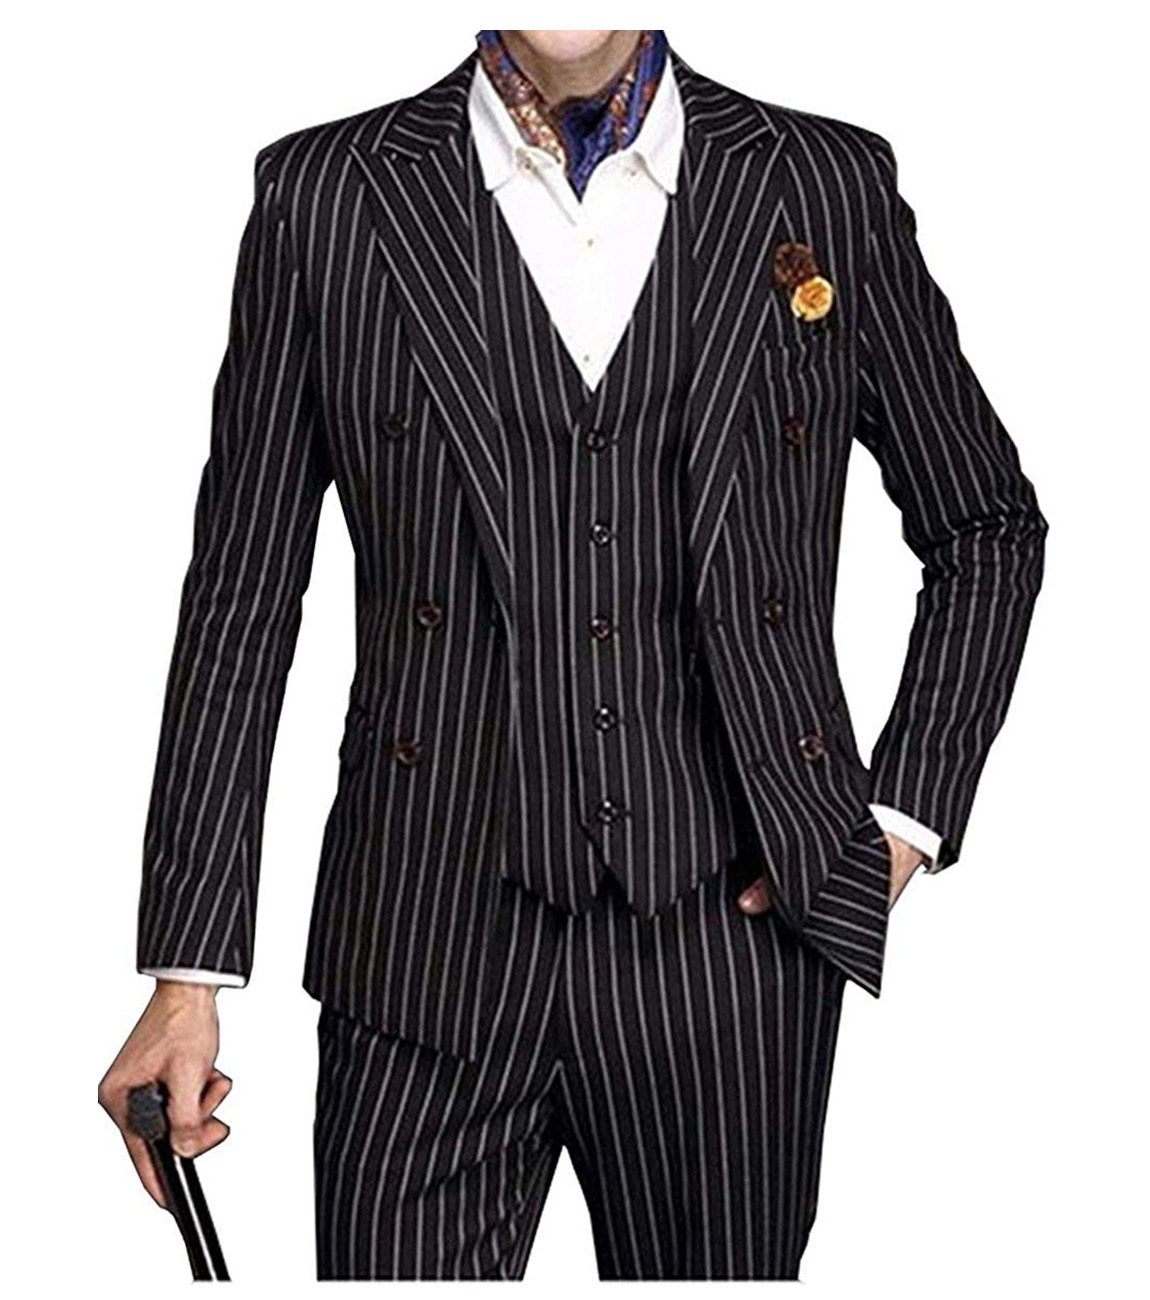 Suits Men 2019 Mens Suit 3 Piece V Neck Pinstripe Wedding Groomman  Notched Lapel Tuxedos (Blazer+Vest+Pants)